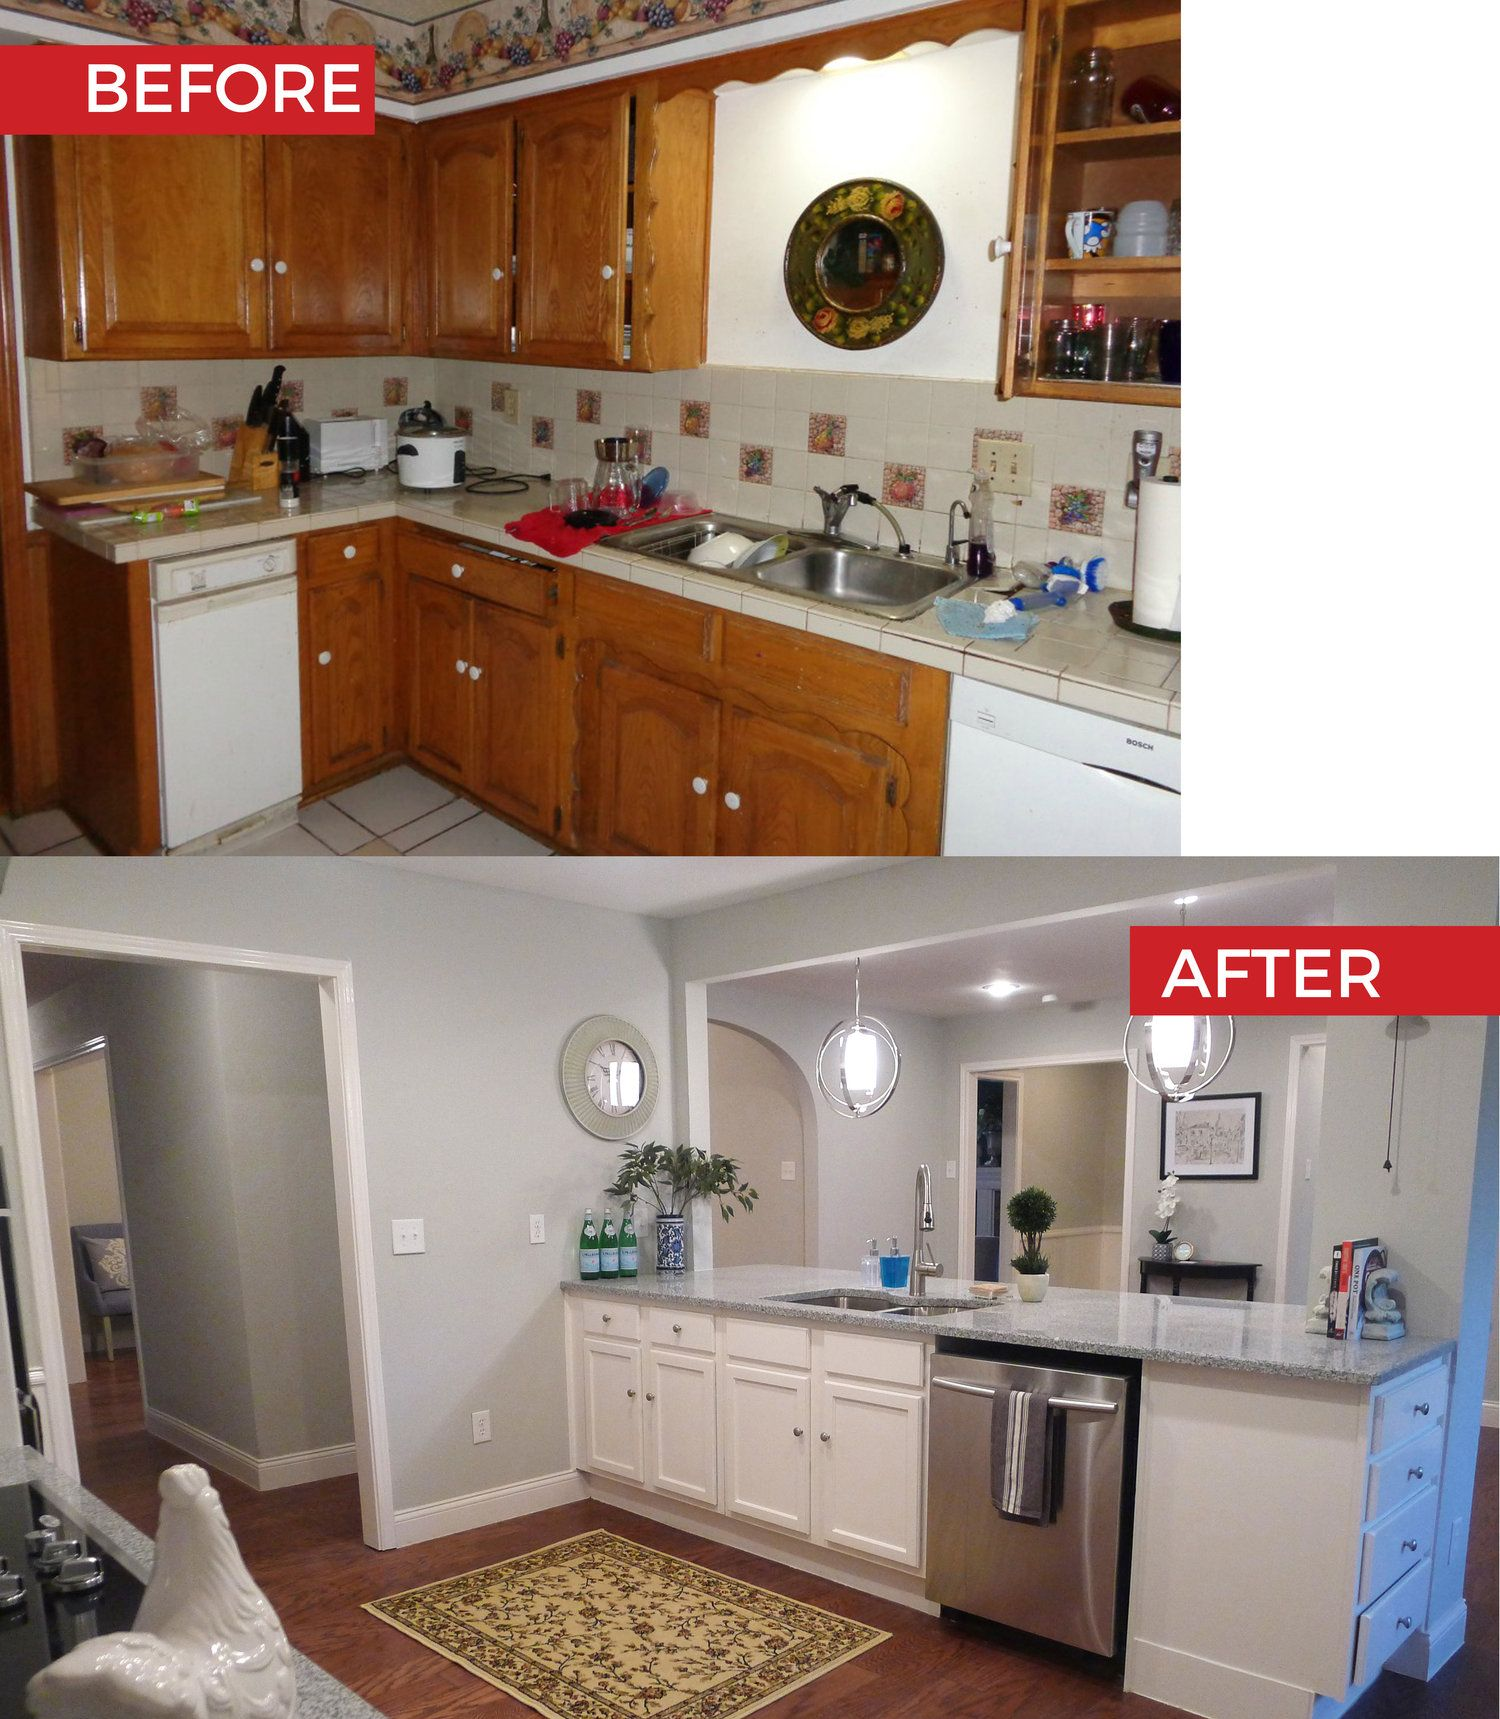 Before After Kitchen Makeover (With Images)